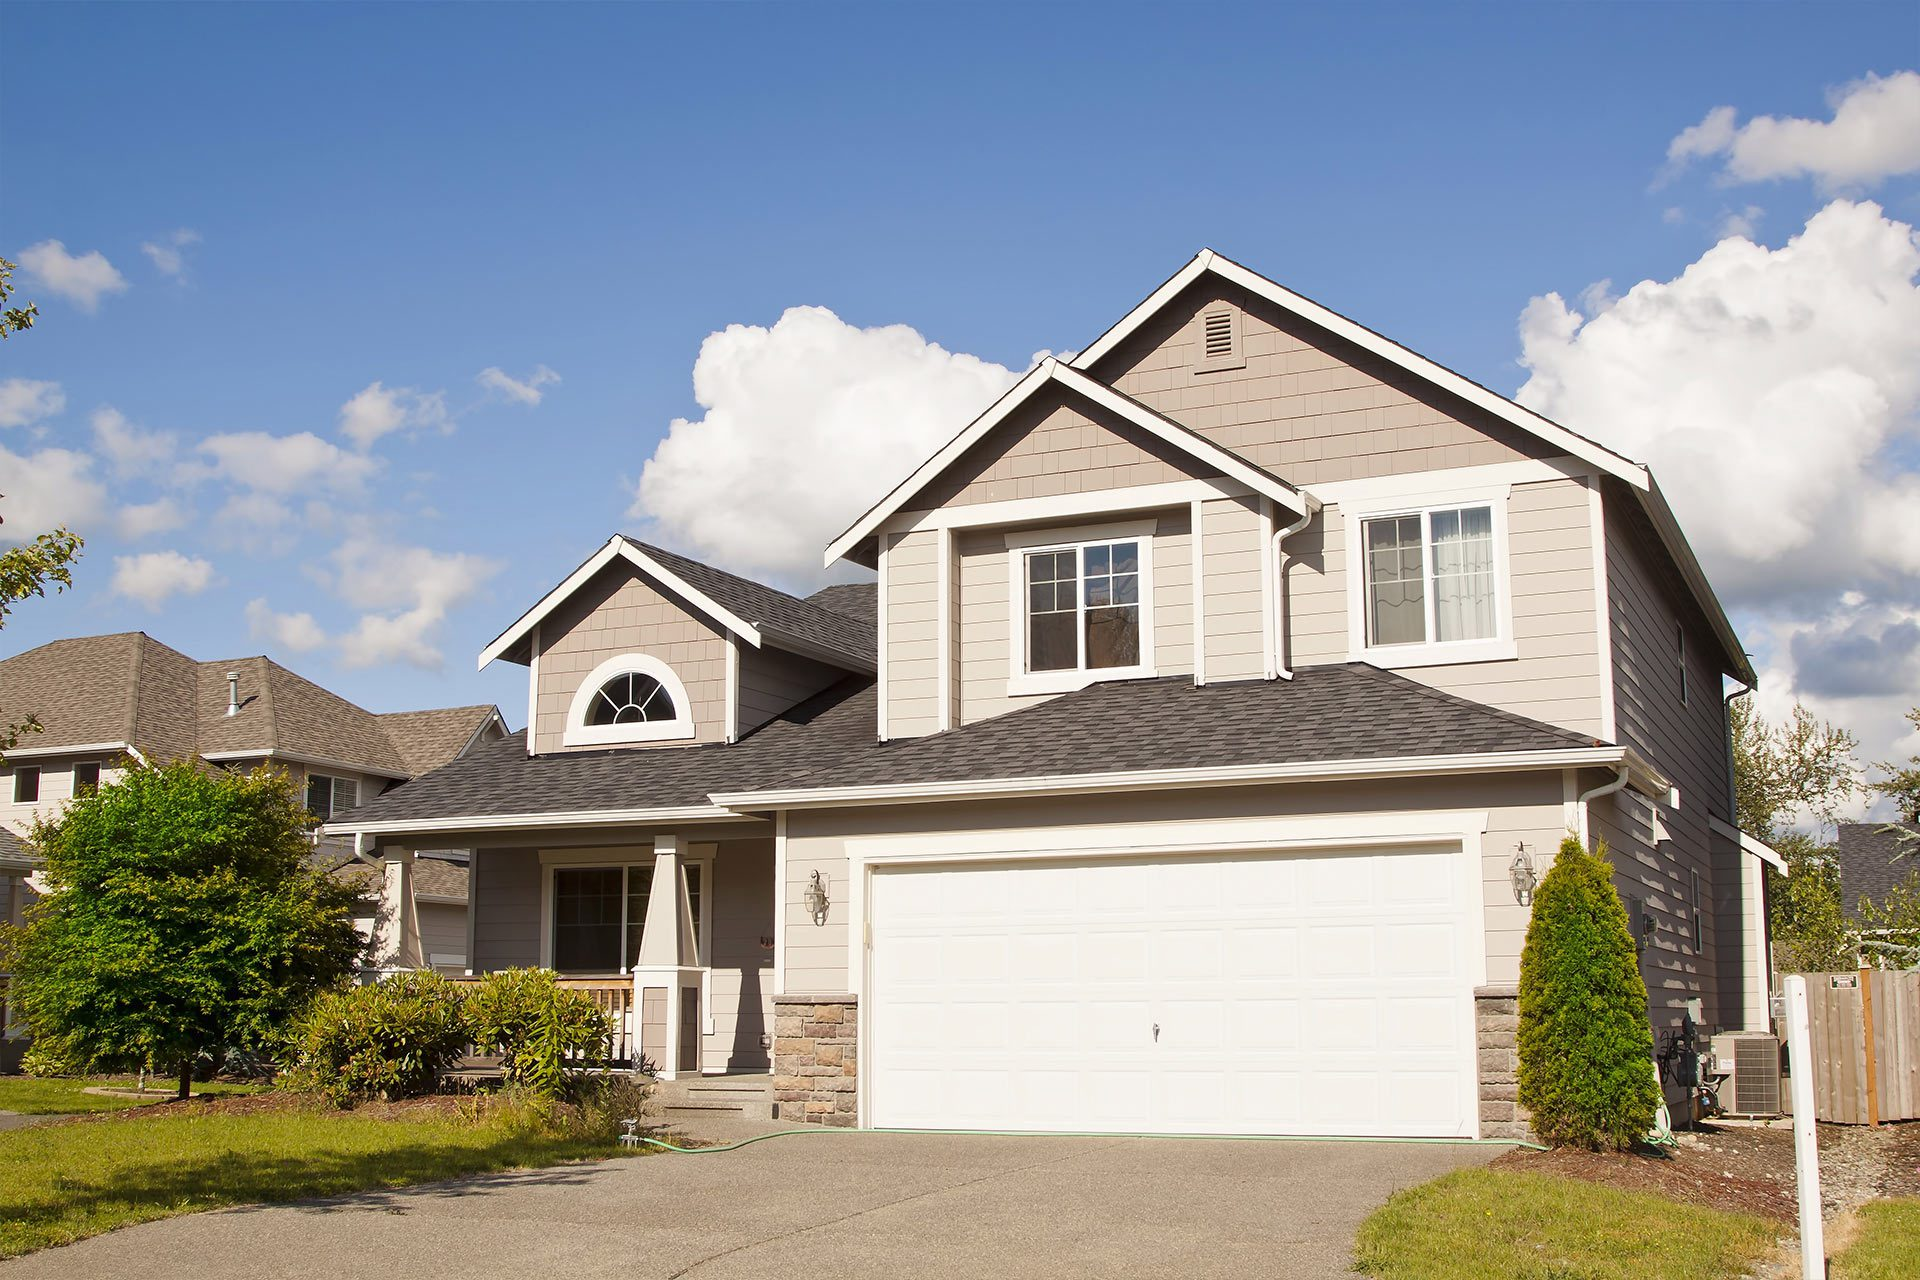 Seattle Home Front with Composite Roof - Roofing Contractor